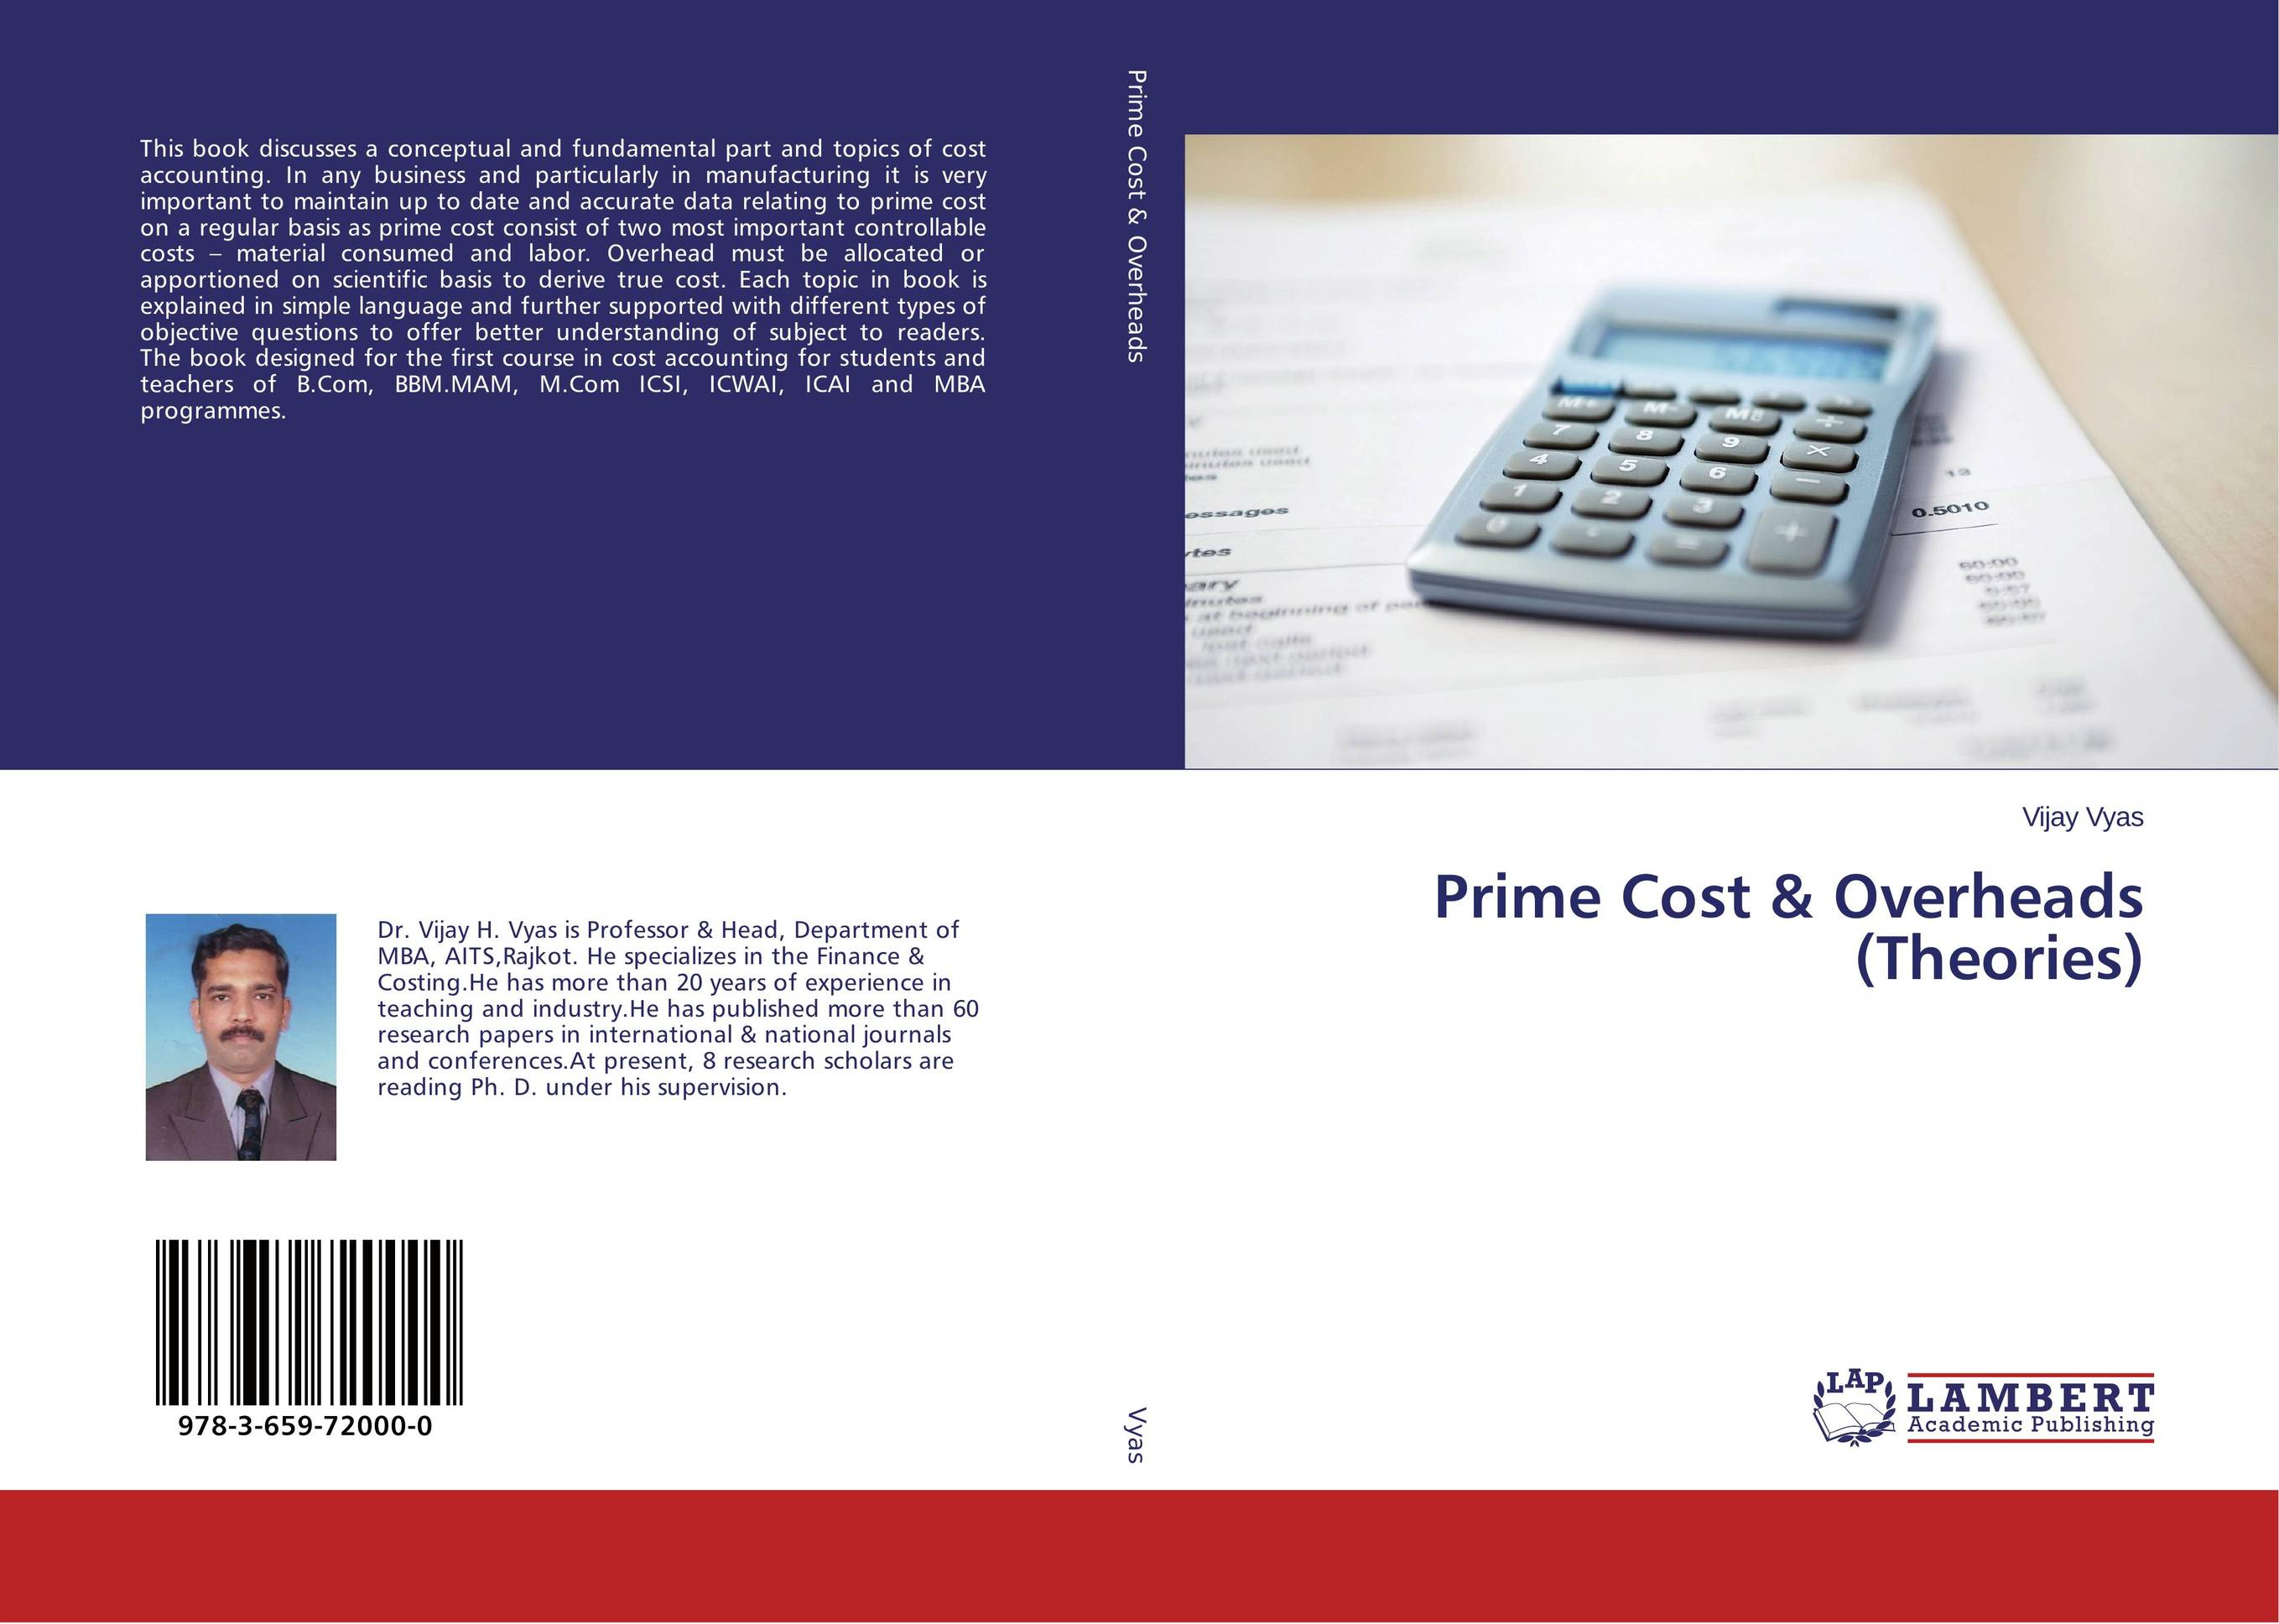 Prime Cost & Overheads (Theories) sandy hood management and cost accounting for dummies uk